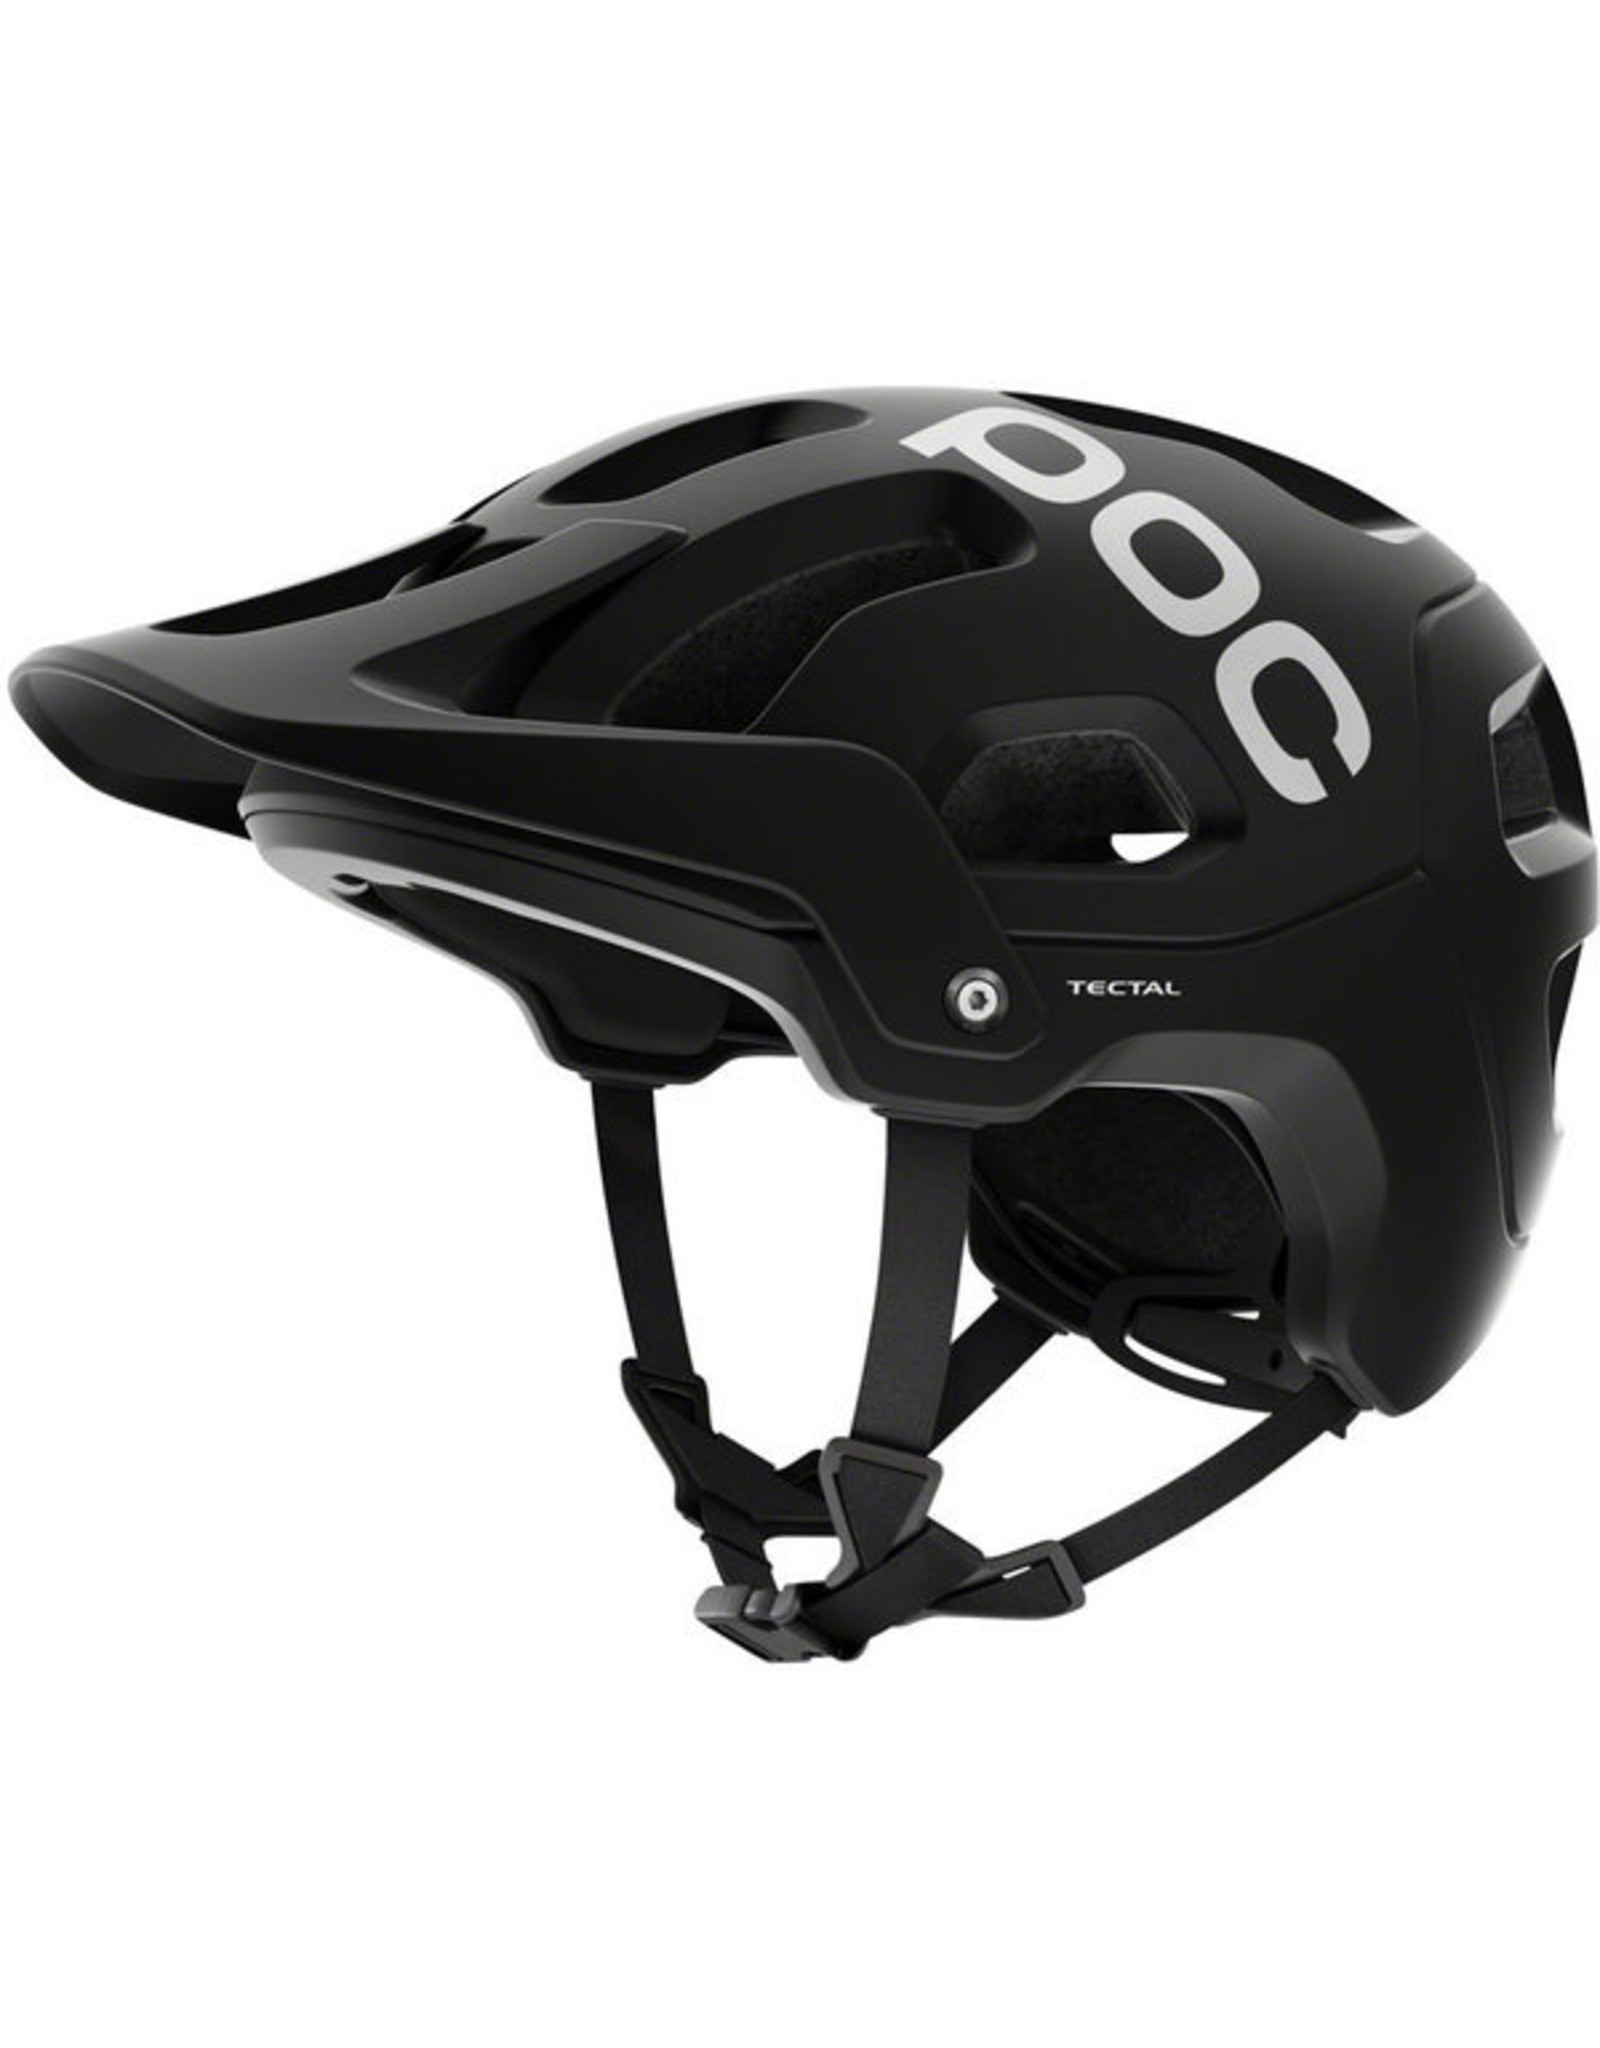 POC POC Tectal Helmet - Uranium Black, Medium/Large